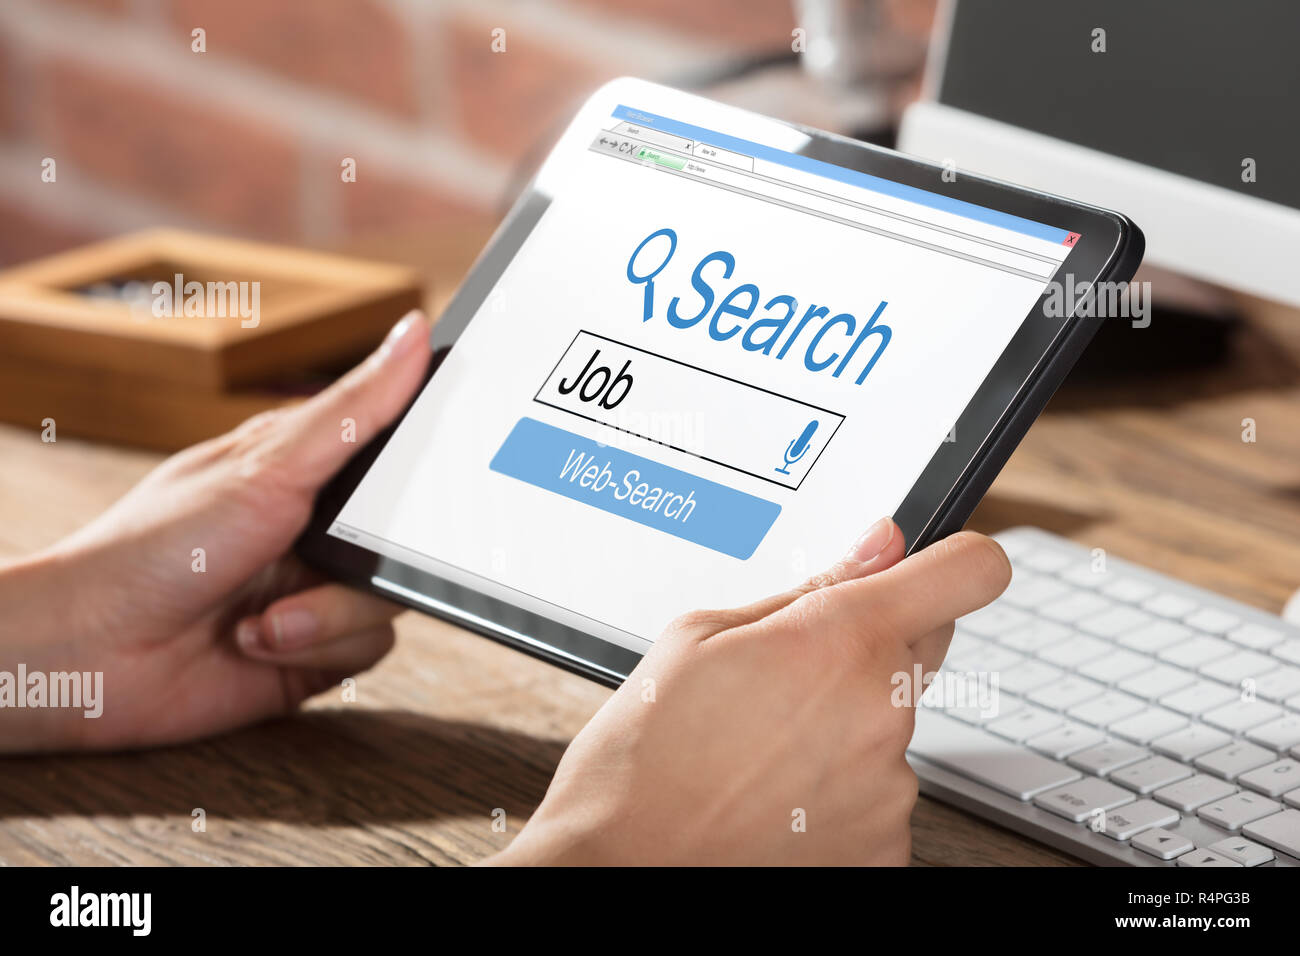 Person Searching Online Job - Stock Image